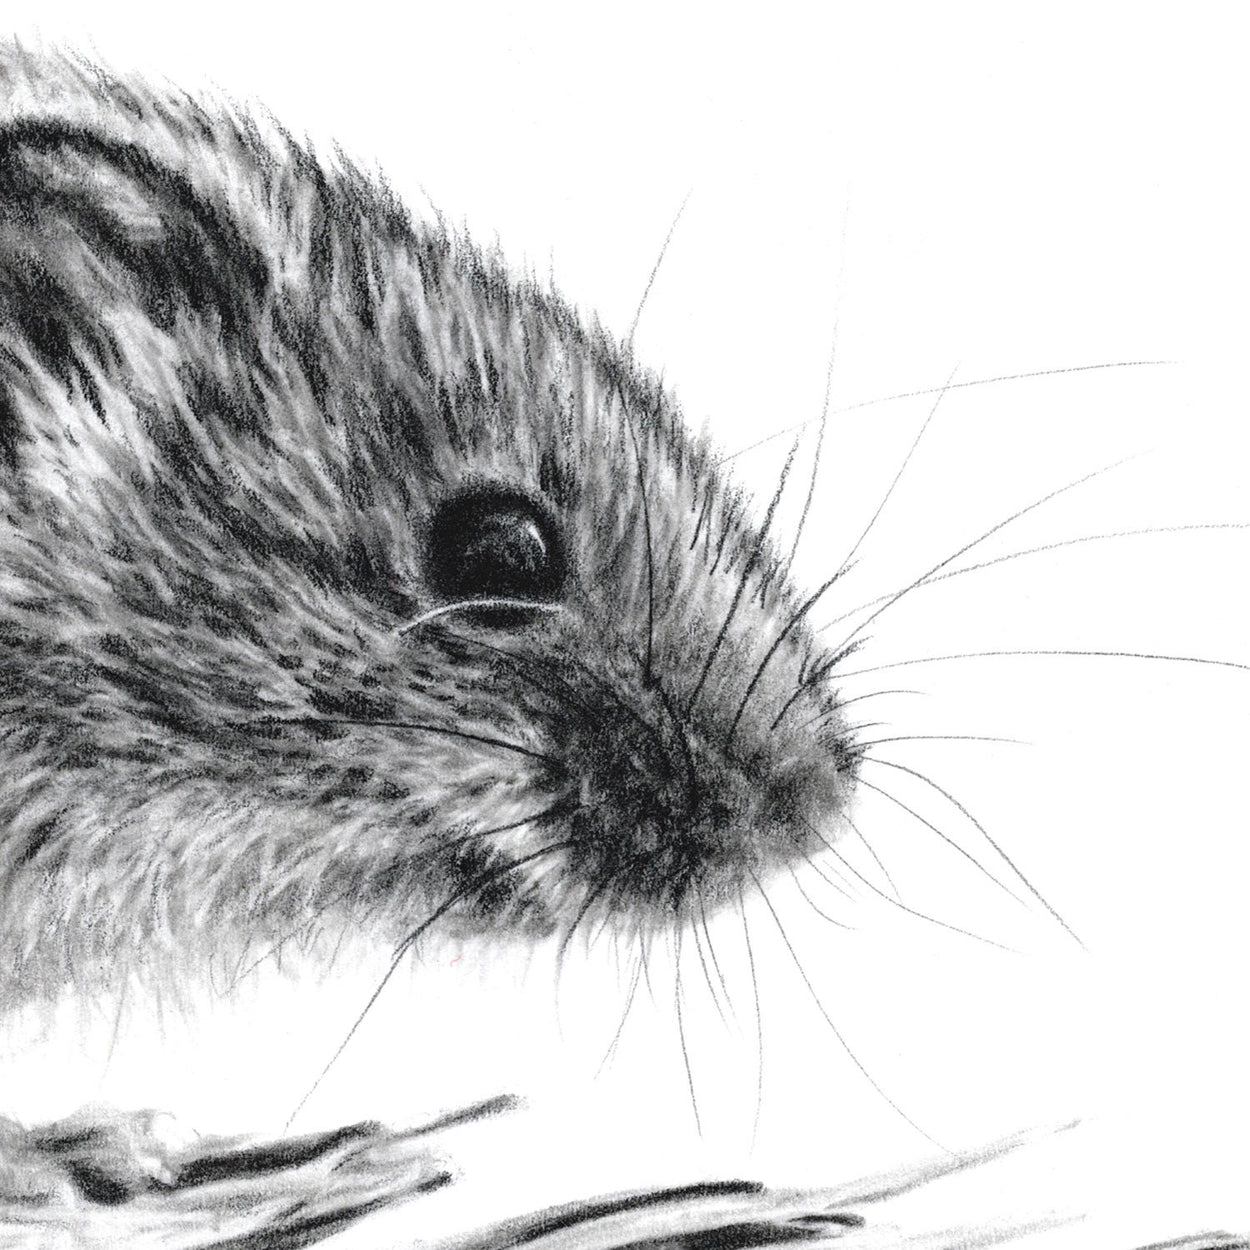 Harvest Mouse Pencil Drawing Close-up - The Thriving Wild